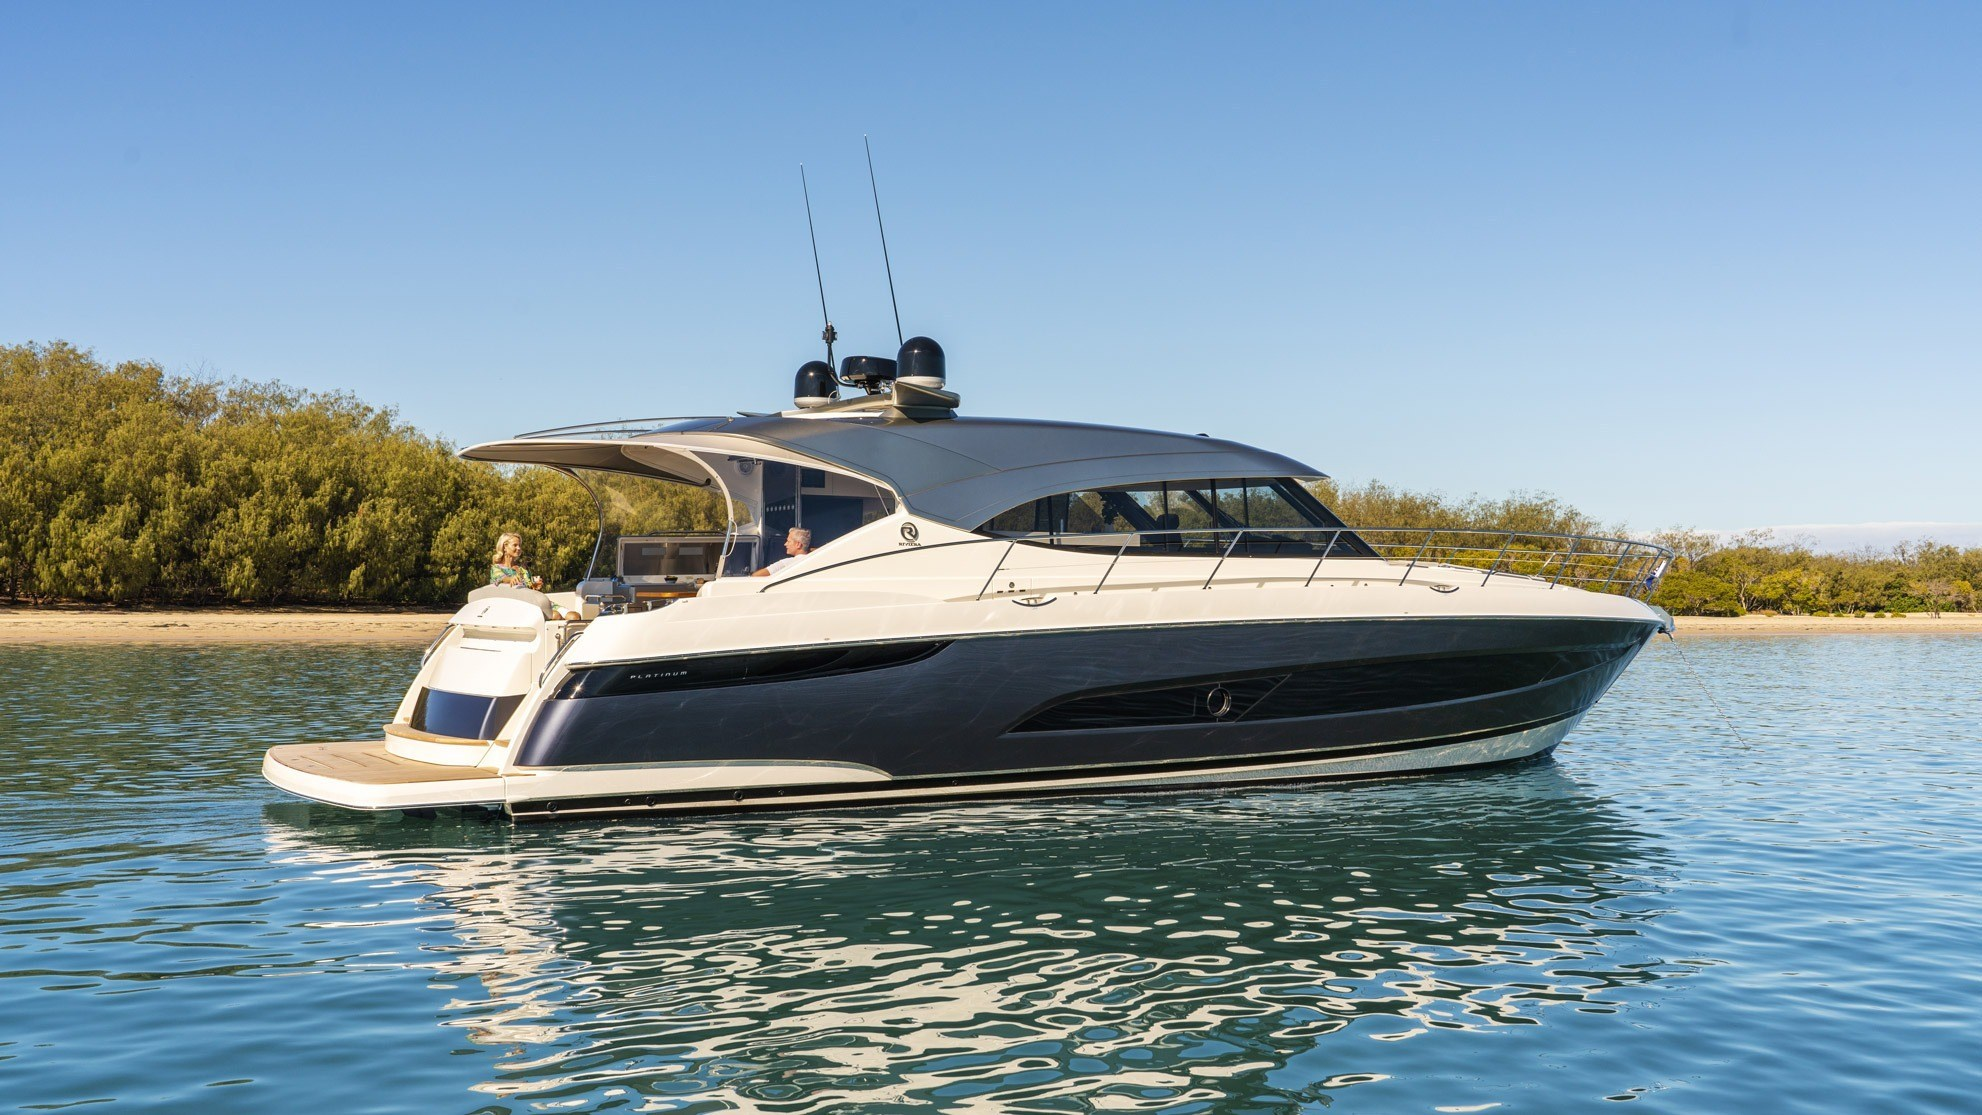 Riviera 5400 Sports Yacht Platinum edition anchored and pictured from the side